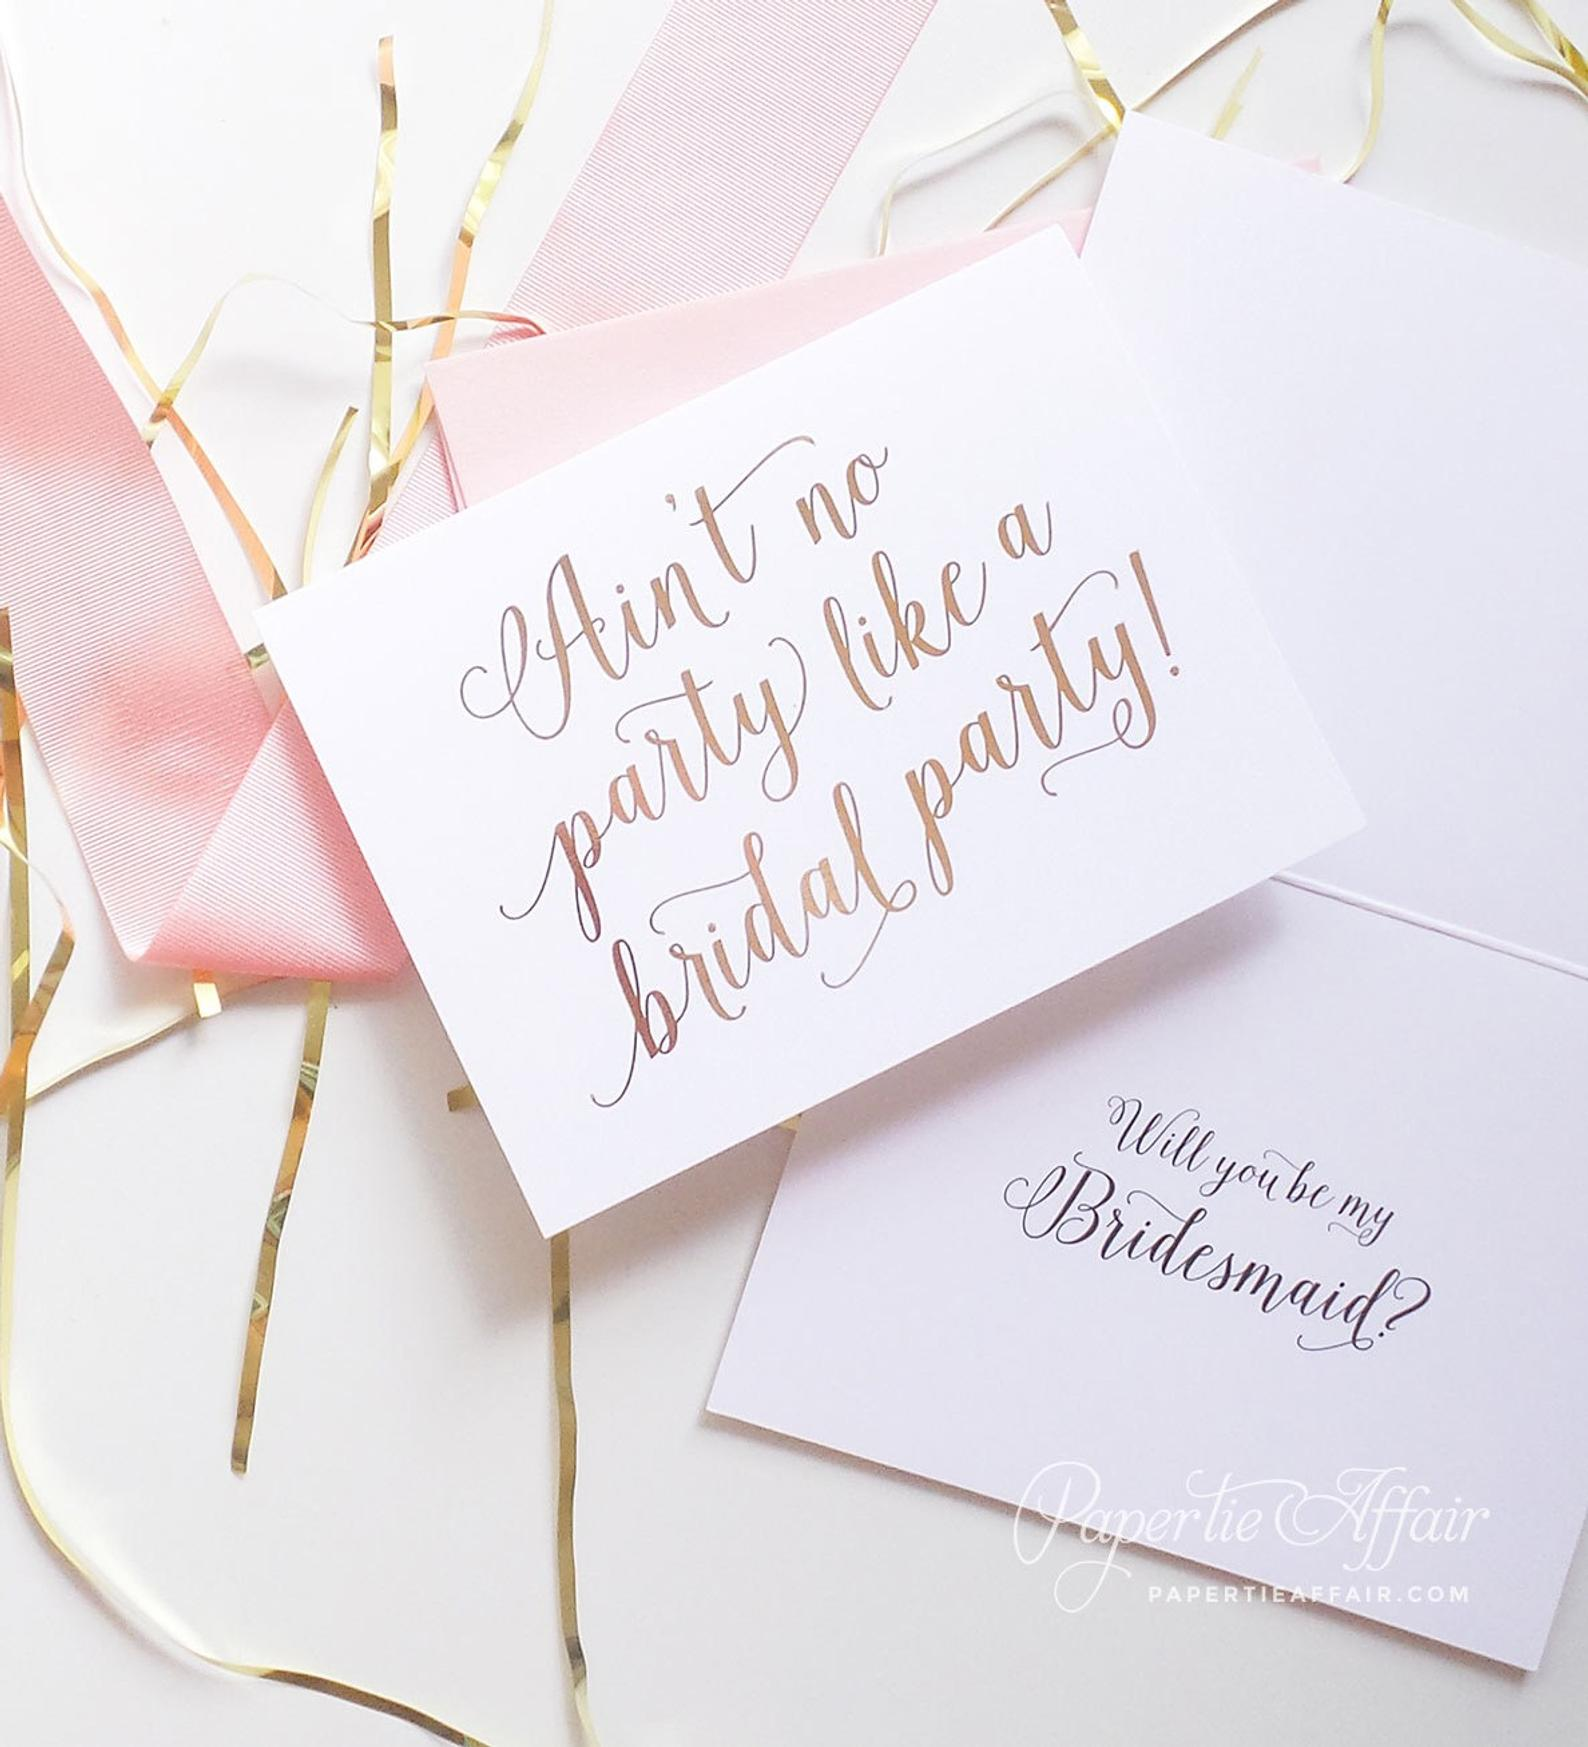 Cute Bridesmaid Proposal Box By Paper Tie Affair